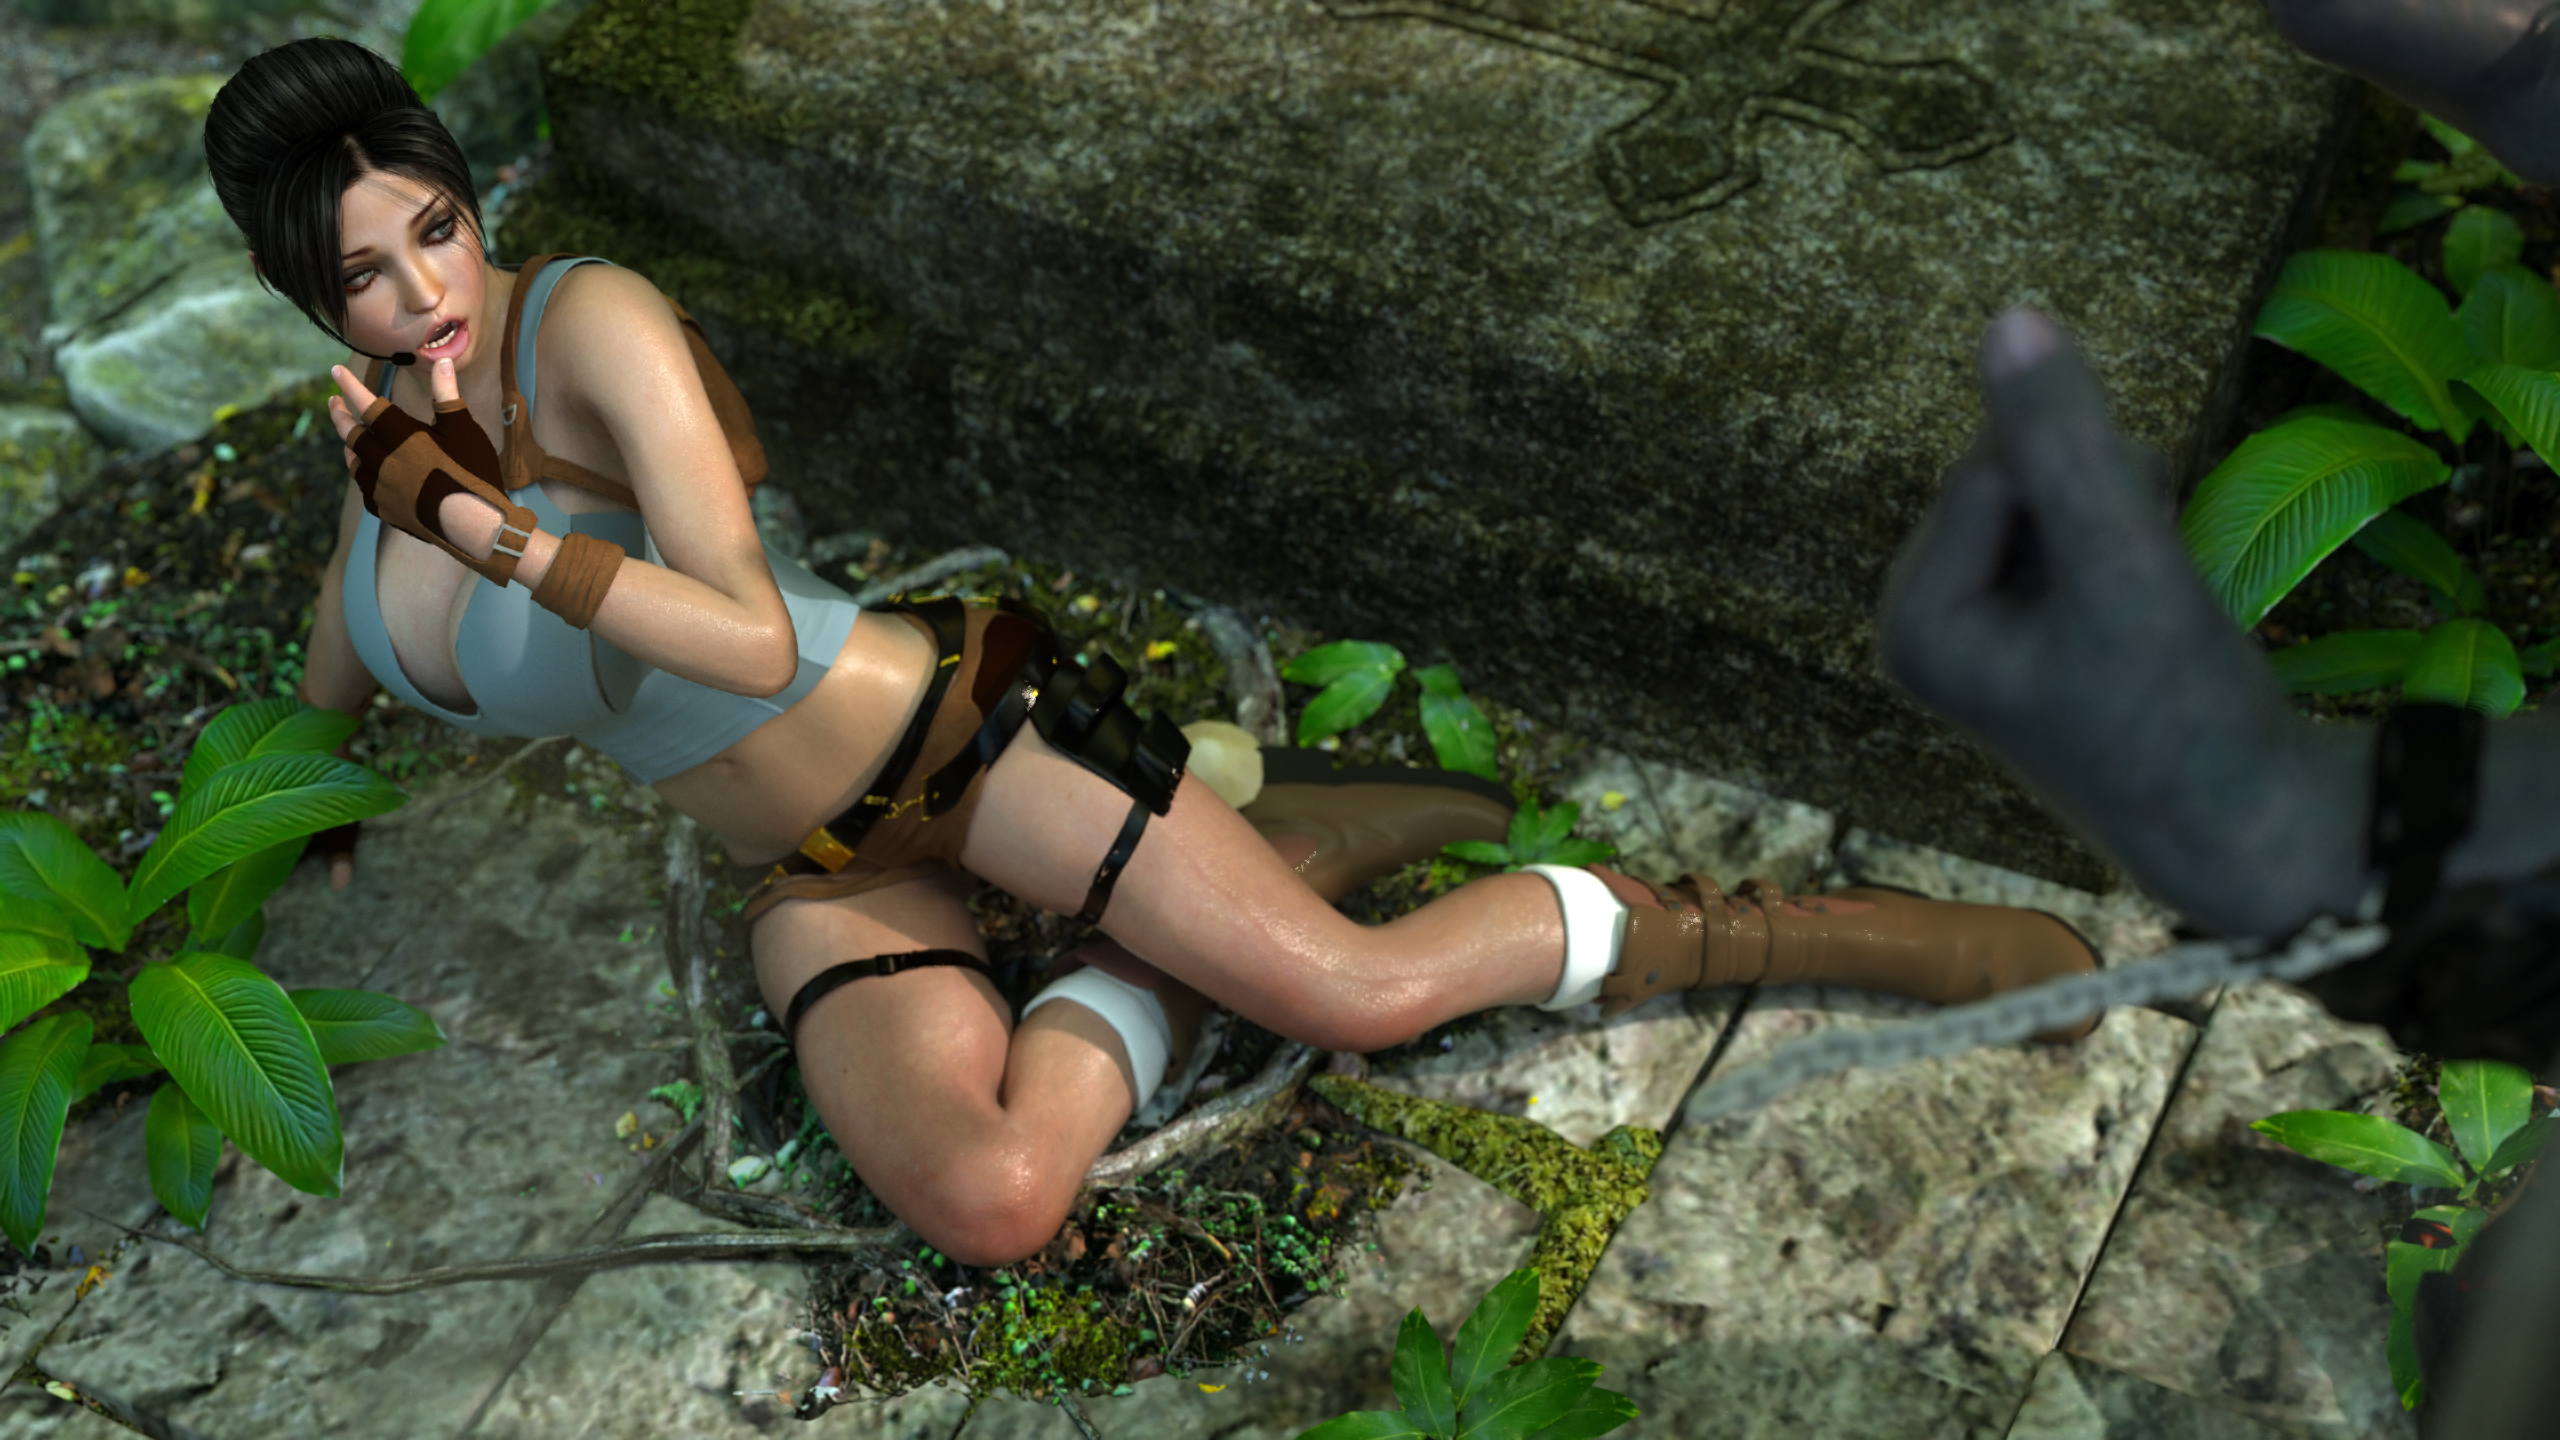 Lara croft as a slave nude pic